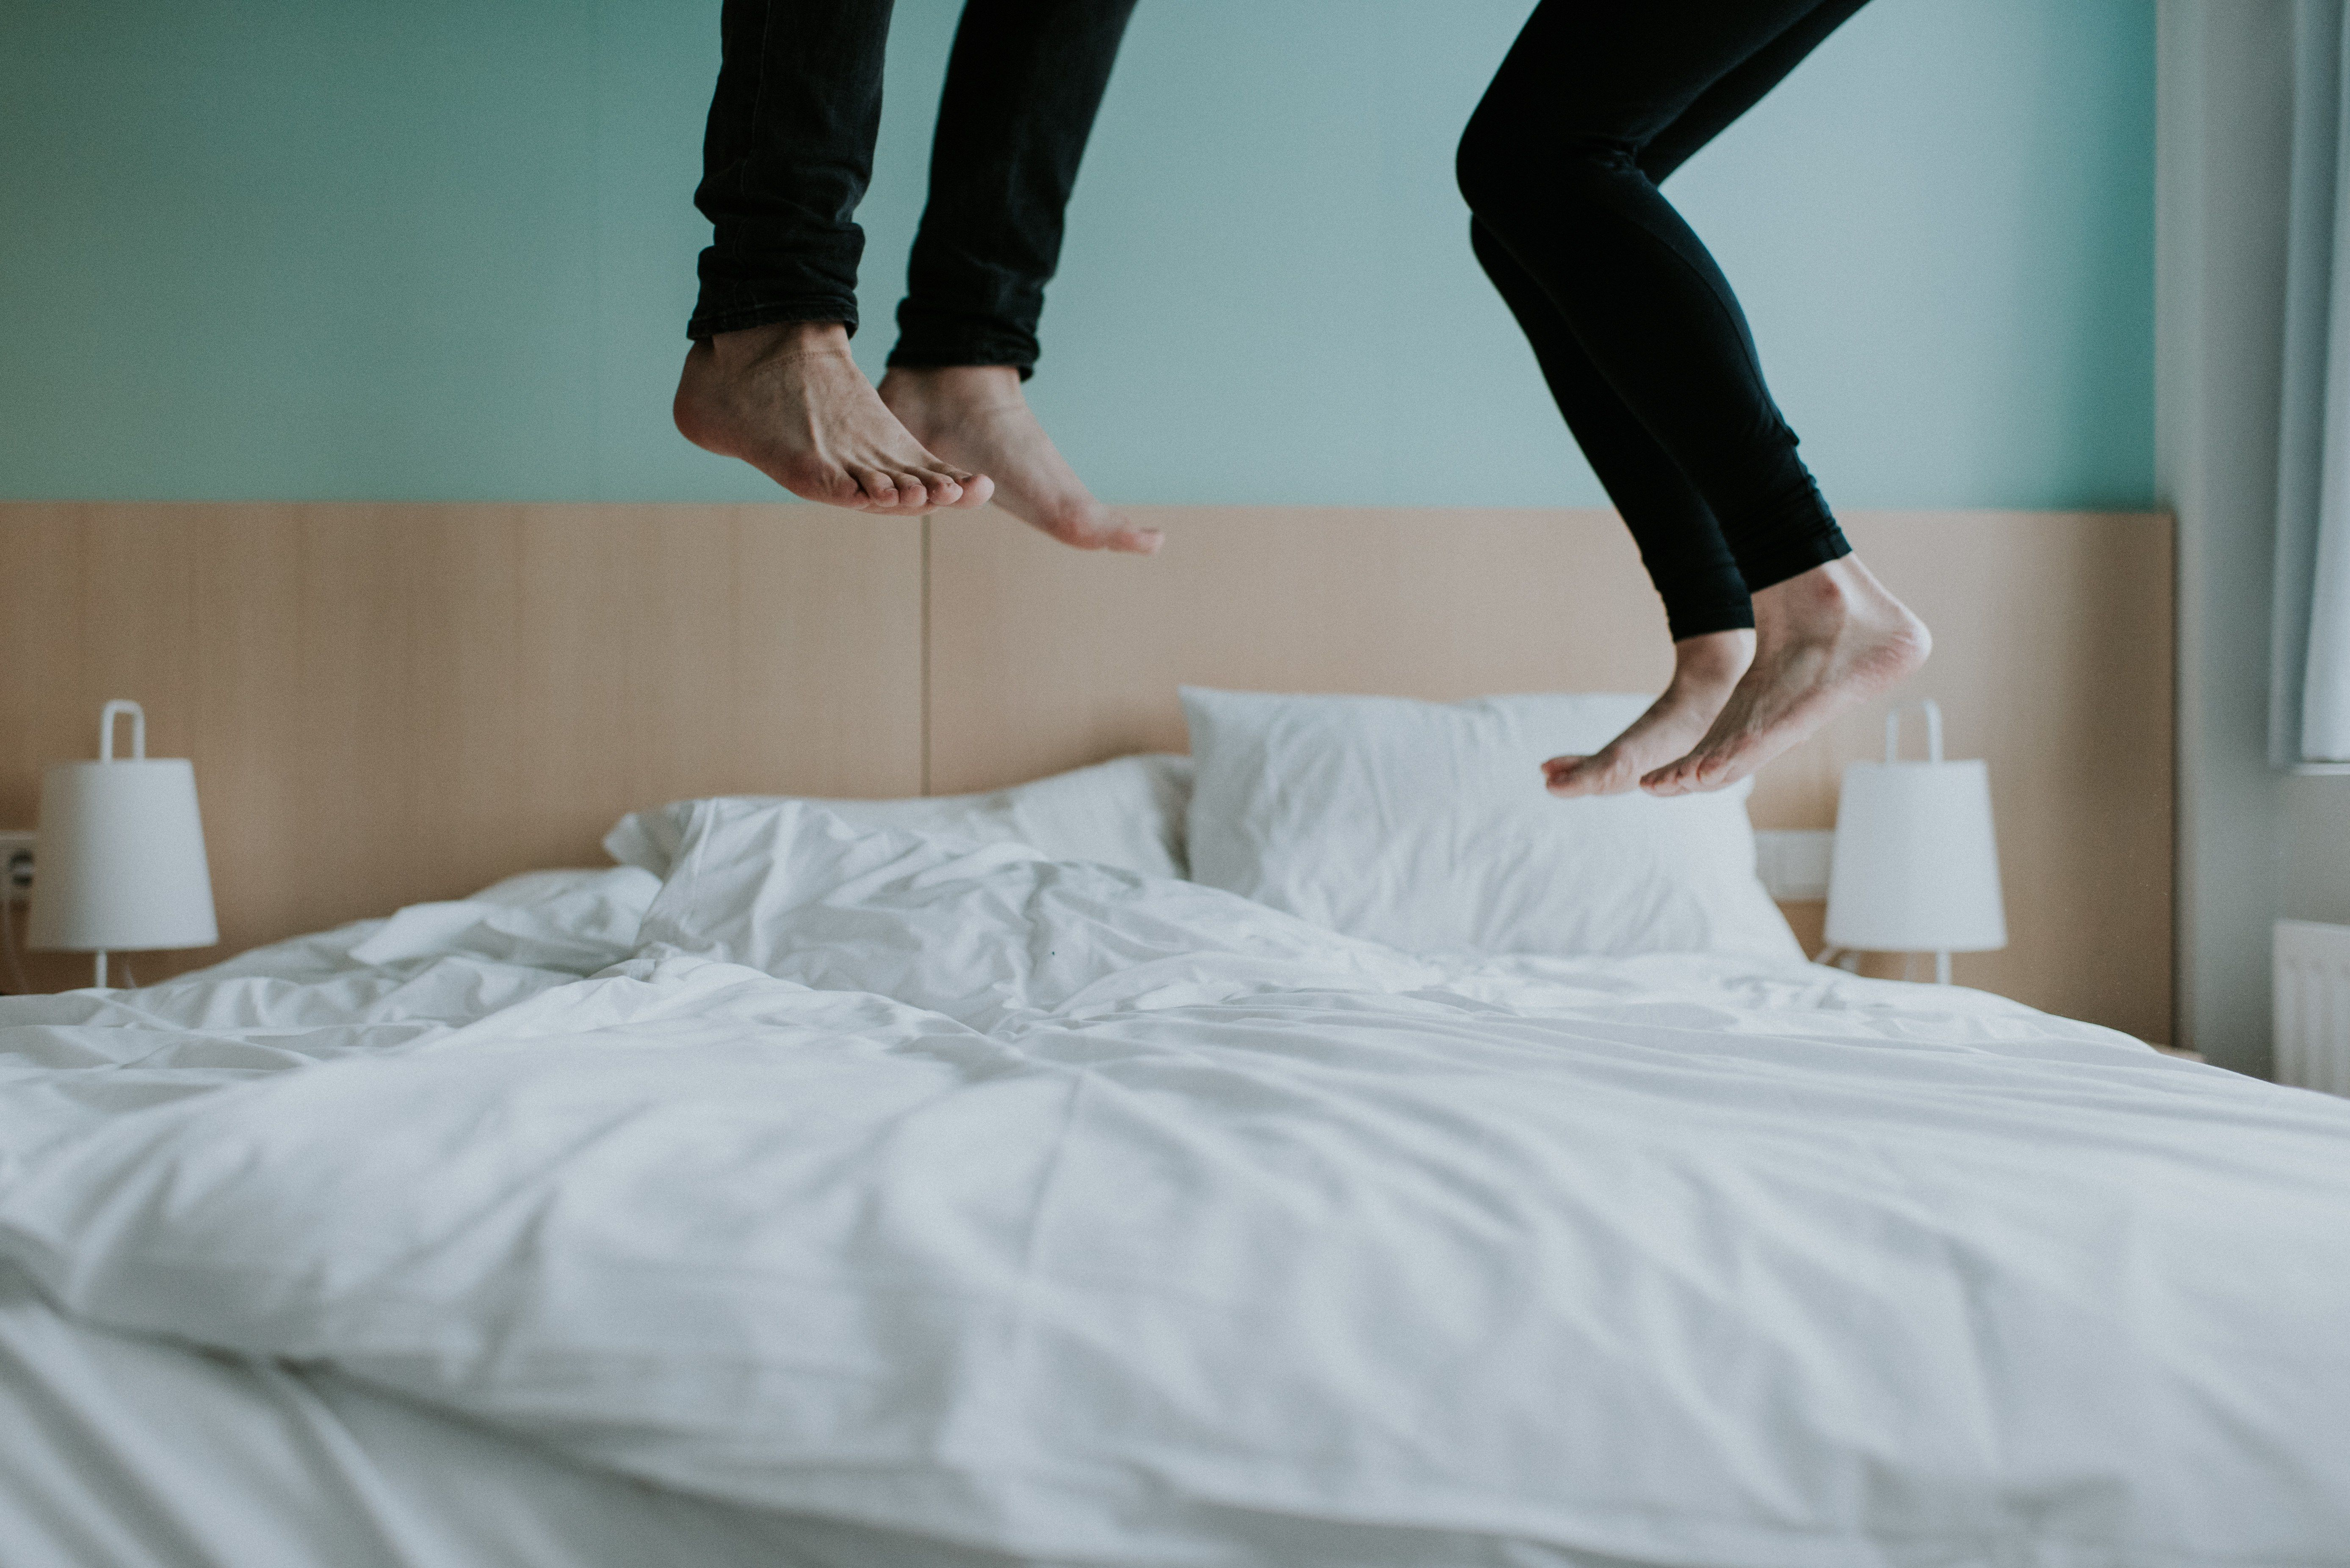 5 Undeniable Benefits of Living Together Before You Tie the